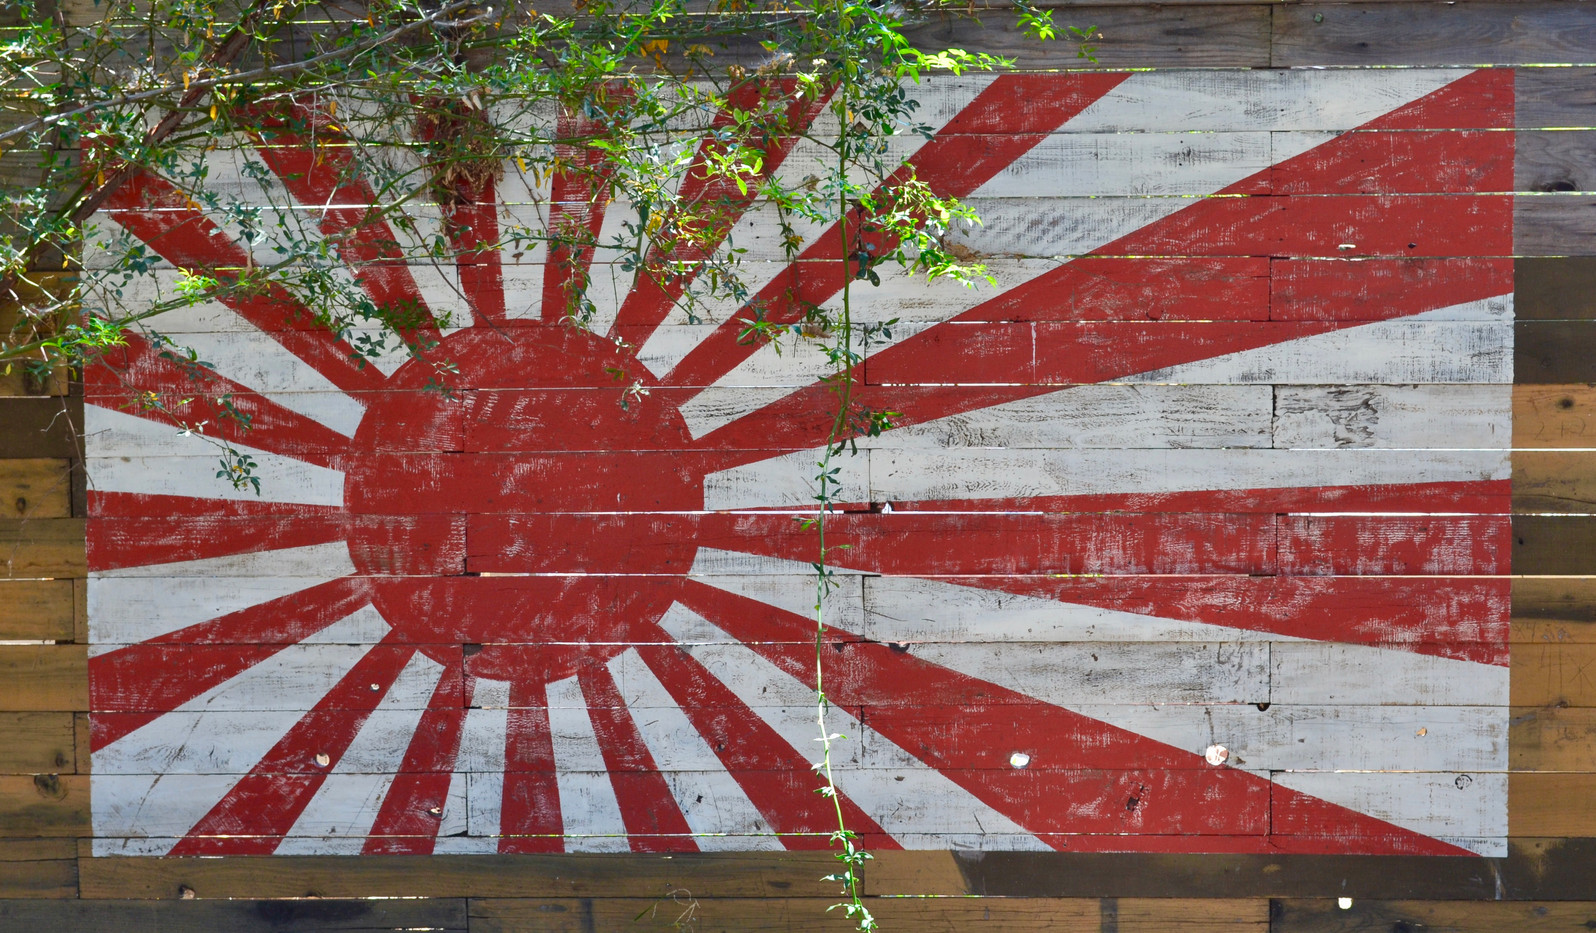 House of the Rising Sun, Mural